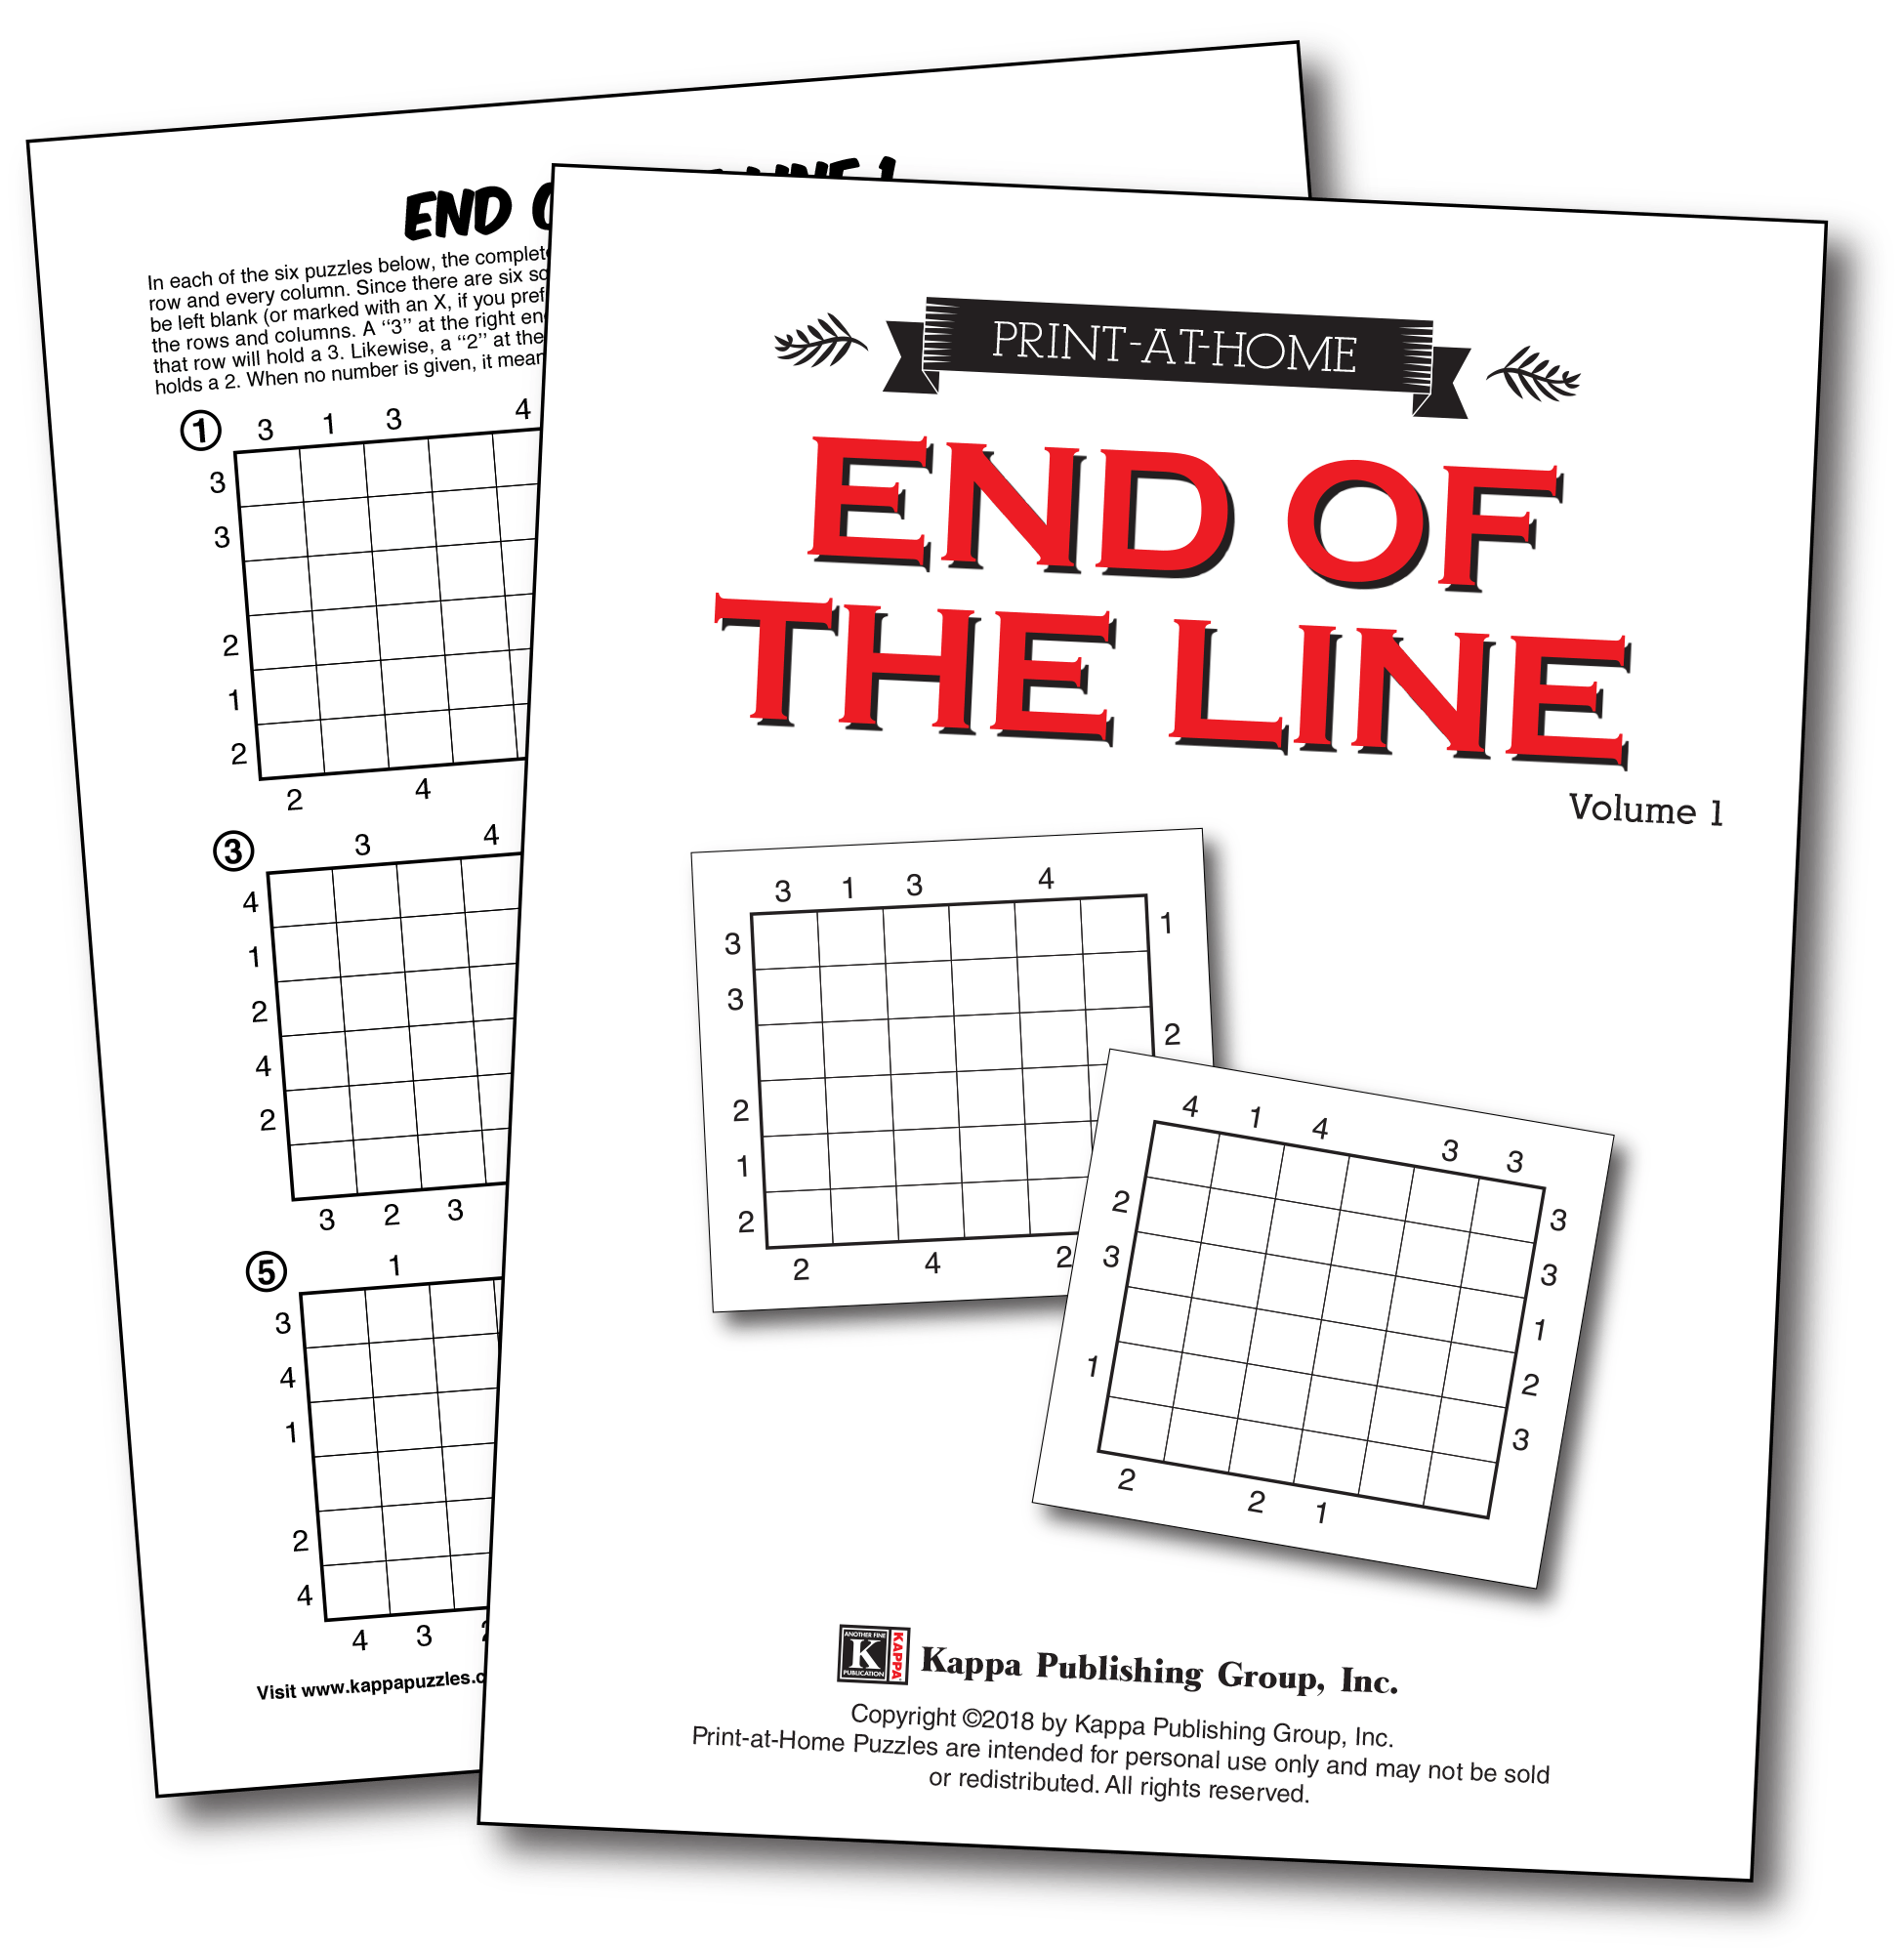 Print-at-Home End of the Line